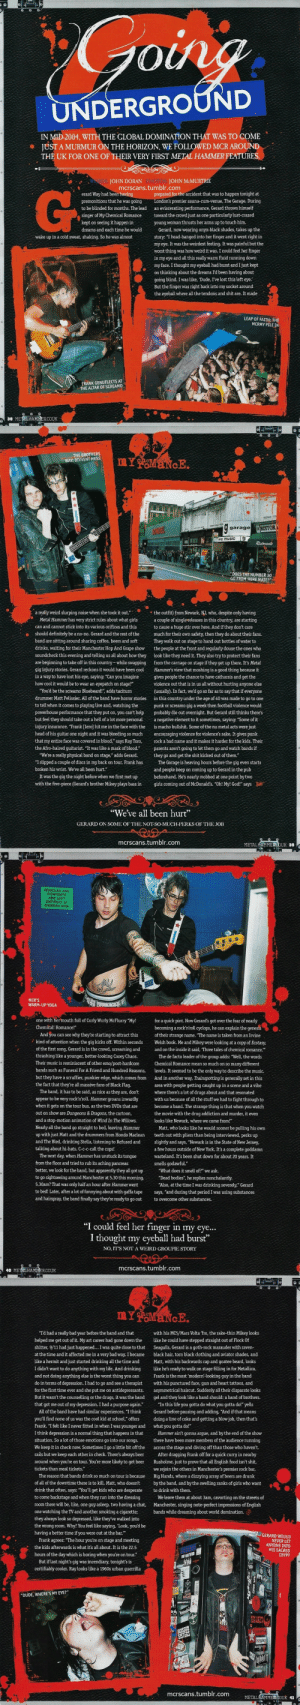 "mcrscans:  My Chemical Romance (UK tour special, 2004) article for Metal Hammer Special, 2013 by John Doran, photography by John McMurtrie.: 0  IN MID-2004, WITH THE GLOBAL DOMINATION THAT WAS TO COME  JUST A MURMUR ON THE HORIZON, WE FOLLOWED MCR AROUND  THE UK FOR ONE OF THEIR VERY FIRST METAL HAMMER FEATURES  WORDS: JOHN DORAN PHOTOS: JOHN McMURTRIE  mcrscans.tumblr.com  G-  prepared for the accident that was to happen tonight at  premier sauna-cum-venue, The Garage. During  erard Way had been having  premonitions that he was going  to be blinded for months. The lead an eviscerating performance, Gerard throws himself  singer of My Chemical Romancetoward the crowd just as one particularly lust-crazed  kept on seeing it happen in  dreams and each time he would  young woman thrusts her arms up to touch him.  Gerard, now wearing onyx-black shades, takes up the  story: ""I head-banged into her finger and it went right in  my eye. It was the weirdest feeling. It was painful but the  worst thing was how weird it was. I could feel her finger  in my eye and all this really warm fluid running down  my face. I thought my eyeball had burst and I just kept  on thinking about the dreams I'd been having about  wake up in a cold sweat, shaking. So he was almost  going blind. I was like, 'Dude, I've lost this left eye:  But the finger was right back into my socket around  the eyeball where all the tendons and shit are. It made  LEAP OF FAITH: THE  MCRMY PILE IN  ANK GENUFLECTS AT  HE ALTAR OF SCREAM  38 METLHAMNERCOUK   THE BROTHERS  WAY: DIVVENT MESS  garage RISTOR  music  ""DOESTHE NUMBER 30  GO FROM HERE MATE?""  a really weird slurping noise when she took it out.the outfit) from Newark, NJ, who, despite only having  Metal Hammer has very strict rules about what girls acouple of single releases in this country, are starting  can and cannot stick into its various orifices and this  should definitely be a no-no. Gerard and the rest of themuch for their own safety, then they do about their fans.  band are sitting around sharing coffee, beers and soft They walk out on stage to hand out bottles of water to  drinks, waiting for their Manchester Hop And Grape show the people at the front and regularly douse the ones who  soundcheck this evening and telling us all about how they look like they need it. They also try to protect their fans  are beginning to take off in this country-while swapping from the carnage on stage if they get up there. It's Metal  gig injury stories. Gerard reckons it would have been cool Hammers view that moshing is a good thing because it  in a way to have lost his eye, saying: ""Can you imagine gives people the chance to have catharsis and get the  how cool it would be to wear an eyepatch on stage?""  to cause a huge stir over here. And if they don't care  violence out that is in us all without hurting anyone else  You'd be the screamo Bluebeard!"", adds taciturr  drummer Matt Pelissier. All of the band have horror stories in this country under the age of 40 was made to go to one  to tell when it comes to playing live and, watching thepunk or screamo gig a week then football violence would  powerhouse performance that they put on, you can't help probably die out overnight. But Gerard still thinks there's  but feel they should take out a hell of a lot more personal anegative element to it sometimes, saying: ""Some of it  injury insurance. ""Frank [Iero] hit me in the face with the is macho bullshit. Some of the nu metal acts were just  head of his guitar one night and it was bleeding so much encouraging violence for violence's sake. It gives punk  that my entire face was covered in blood,"" says Ray Toro, rck a bad name and it makes it harder for the kids. Their  the Afro-haired guitarist. ""It was like a mask of blood."" parents aren't going to let them go and watch bands if  (usually). In fact, we'd go so far as to say that if everyone  ""We're a really physical band on stage,"" adds Gerard.they go and get the shit kicked out of them.""  ""I slipped a couple of discs in my back on tour. Frank hasThe Garage is heaving hours before the gig even starts  broken his wrist. We've all been hurt.""  It was the gig the night before when we first met up  with the five-piece (Gerard's brother Mikey plays bass in  and people keep on coming up to Gerard in the pub  beforehand. He's nearly mobbed at one point by two  girls coming out of McDonald's. ""Oh! My! God!"" says  ""We've all been hurt  GERARD ON SOME OF THE NOT-SO-MUCH-PERKS OF THE JOB  mcrscans.tumblr.com  METALHAMMERCOUK 39   VEHICLES AND  CONTENTS  ARE LEFT  ENTIRELY AT  OWNERS RISK  MCR'S  WARM-UP YOGA  one with hermouth full of Curly Wurly McFlurry ""My!  Chemical! Romance!  for a quick pint. Now Gerard's got over the fear of nearly  becoming a rocknrolcyclops, he can explain the genesis.  And you can see why they're starting to attract this  of their strange name. ""The name is taken from an Irvine  kind of attention when the gig kicks off. Within seconds Welsh book. Me and Mikey were looking at a copy of Ecstasy,  of the first song, Gerard is in the crowd, screaming and  thrashing like a younger, better-looking Casey Chaos.  Their music is reminiscent of other emo/post-hardcoreChemical Romance mean so much on so many different  bands such as Funeral For A Friend and Hundred Reasons, levels. It seemed to be the only way to describe the music.  but they have a scruffier, punkier edge, which comes fromAnd in another way, Trainspotting is generally set in this  the fact that they're all massive fans of Black Flag.  and on the inside it said, Three tales of chemical romance.""  The de facto leader of the group adds: ""Well, the words  area with people getting caught up in a scene and a vibe  The band, it has to be said, as nice as they are, don't  appear to be very rock'n'roll. Hammer groans inwardly  when it gets on the tour bus, as the two DVDs that are  out on show are Dungeons & Dragons, the cartoon,  and a stop-motion animation of Wind In The Willows.  Nearly all the band go straight to bed, leaving Hammer Matt, who looks like he would sooner be pulling his own  up with just Matt and the drummers from Hondo Macleanteeth out with pliers than being interviewed, perks up  and The Bled, drinking Stella, listening to Refused and slightly and says, ""Newark is in the State of New Jersey,  talking about hi-hats. C-c-c-call the cops!  where there's a lot of drugs about and that resonated  with us because of all the stuff we had to fight through to  become a band. The strange thing is that when you watch  the movie with the drug addiction and murder, it evern  looks like Newark, where we come from!""  a few hours outside of New York. It's a complete goddamn  The next day, when Hammer has unstuck its tonguewasteland. It's been shut down for about 20 years. It  from the floor and tried to rub its aching pancreas  better, we look for the band, but apparently they all got up What does it smell of?"" we ask.  to go sightseeing around Manchester at 5.30 this morning. ""Dead bodies"", he replies nonchalantly.  5.30am? That was only half an hour after Hammer went  to bed! Later, after a lot of fannying about with gaffa tape says, ""and during that period I was using substances  and hairspray, the band finally say theyre ready to go out to overcome other substances.  smells godawful.""  ""Also, at the time I was drinking severely,"" Gerard  ""I could feel her finger in my eye...  I thought my eyeball had burst""  NO, ITS NOT A WEIRD GROUPIE STORY  mcrscans.tumblr.com  40 METRIHAMMERCOUK   ""Id had a really bad year before the band and that  helped me get out of it. My art career had gone down the like he could have stepped straight out of Flock Of  shitter, 9/11 had just happened. I was quite close to that Seagulls, Gerard is a goth-rock marauder with raven-  at the time and it affected me in a very bad way. I became black hair, torn black clothing and aviator shades, and  like a hermit and just started drinking all the time and Matt, with his backwards cap and goatee beard, looks  I didn't want to do anything with my life. And drinking like he's ready to walk on stage filling in for Metallica.  and not doing anything else is the worst thing you can Frank is the most 'modern-looking guy in the band  do in terms of depression. I had to go and see a therapist with his punctured face, gun and heart tattoos, and  for the first time ever and she put me on antidepressants. asymmetrical haircut. Suddenly all their disparate looks  But it wasn'tthe counselling or the drugs, it was the band gel and they look like a band should: a band of brothers.  that got me out of my depression. I had a purpose again."" ""In this life you gotta do what you gotta do!"" yells  with his MC5/Mars Volta 'fro, the rake-thin Mikey looks  All of the band have had similar experiences. ""I think Gerard before pausing and adding, ""And if that means  you'll find none of us was the cool kid at school,"" offers doing a line of coke and getting a blow job, then that's  Frank. ""I felt like I never fitted in when I was younger and what you gotta do!""  I think depression is a normal thing that happens in thatHammer ain't gonna argue, and by the end of the show  situation. So a lot of those emotions go into our songs. there have been more members of the audience running  We keep it in check now. Sometimes I go a little bit off the across the stage and diving off than those who haven't.  rails but we keep each other in check. There's always beer After dragging Frank off for a quick curry in nearby  around when you're on tour. You're more likely to get beer Rusholme, just to prove that all English food isn't shit,  tickets than meal tickets.""  we rejoin the others in Manchester's premier rock bar,  The reason that bands drink so much on tour is because Big Hands, where a dizzying array of beers are drunk  of all of the downtime there is to kil. Matt, who doesnt by the band, and by the swelling ranks of girls who want  drink that often, says: You'll get kids who are desperate to drink with them.  to come backstage and when they run into the dressingWe leave them at about 3am, cavorting on the streets of  room there will be, like, one guy asleep, two having a chat, Manchester, singing note-perfect impressions of English  one watching the TV and another smoking a cigarettebands while dreaming about world domination.  they always look so depressed, like they've walked into  the wrong room. Why? You feel like saying, Look, you'd be  having a better time if you were out at the bar.""  Frank agrees: The hour you're on stage and meeting  the kids afterwards is what it's all about. It is the 22.5  GERARD WOULD  NEVER LET  ANYONE INTO  HIS SACRED  CRYPT  hours of the day which is boring when you're on tour.""  But if last night's gig was incendiary, tonight's is  certifiably cooler. Ray looks like a 1960s urban guerrilla  If  'DUDE, WHERE'S MY EYE?""  mcrscans.tumblr.com  METALHAMM  ERCOUK 41 mcrscans:  My Chemical Romance (UK tour special, 2004) article for Metal Hammer Special, 2013 by John Doran, photography by John McMurtrie."